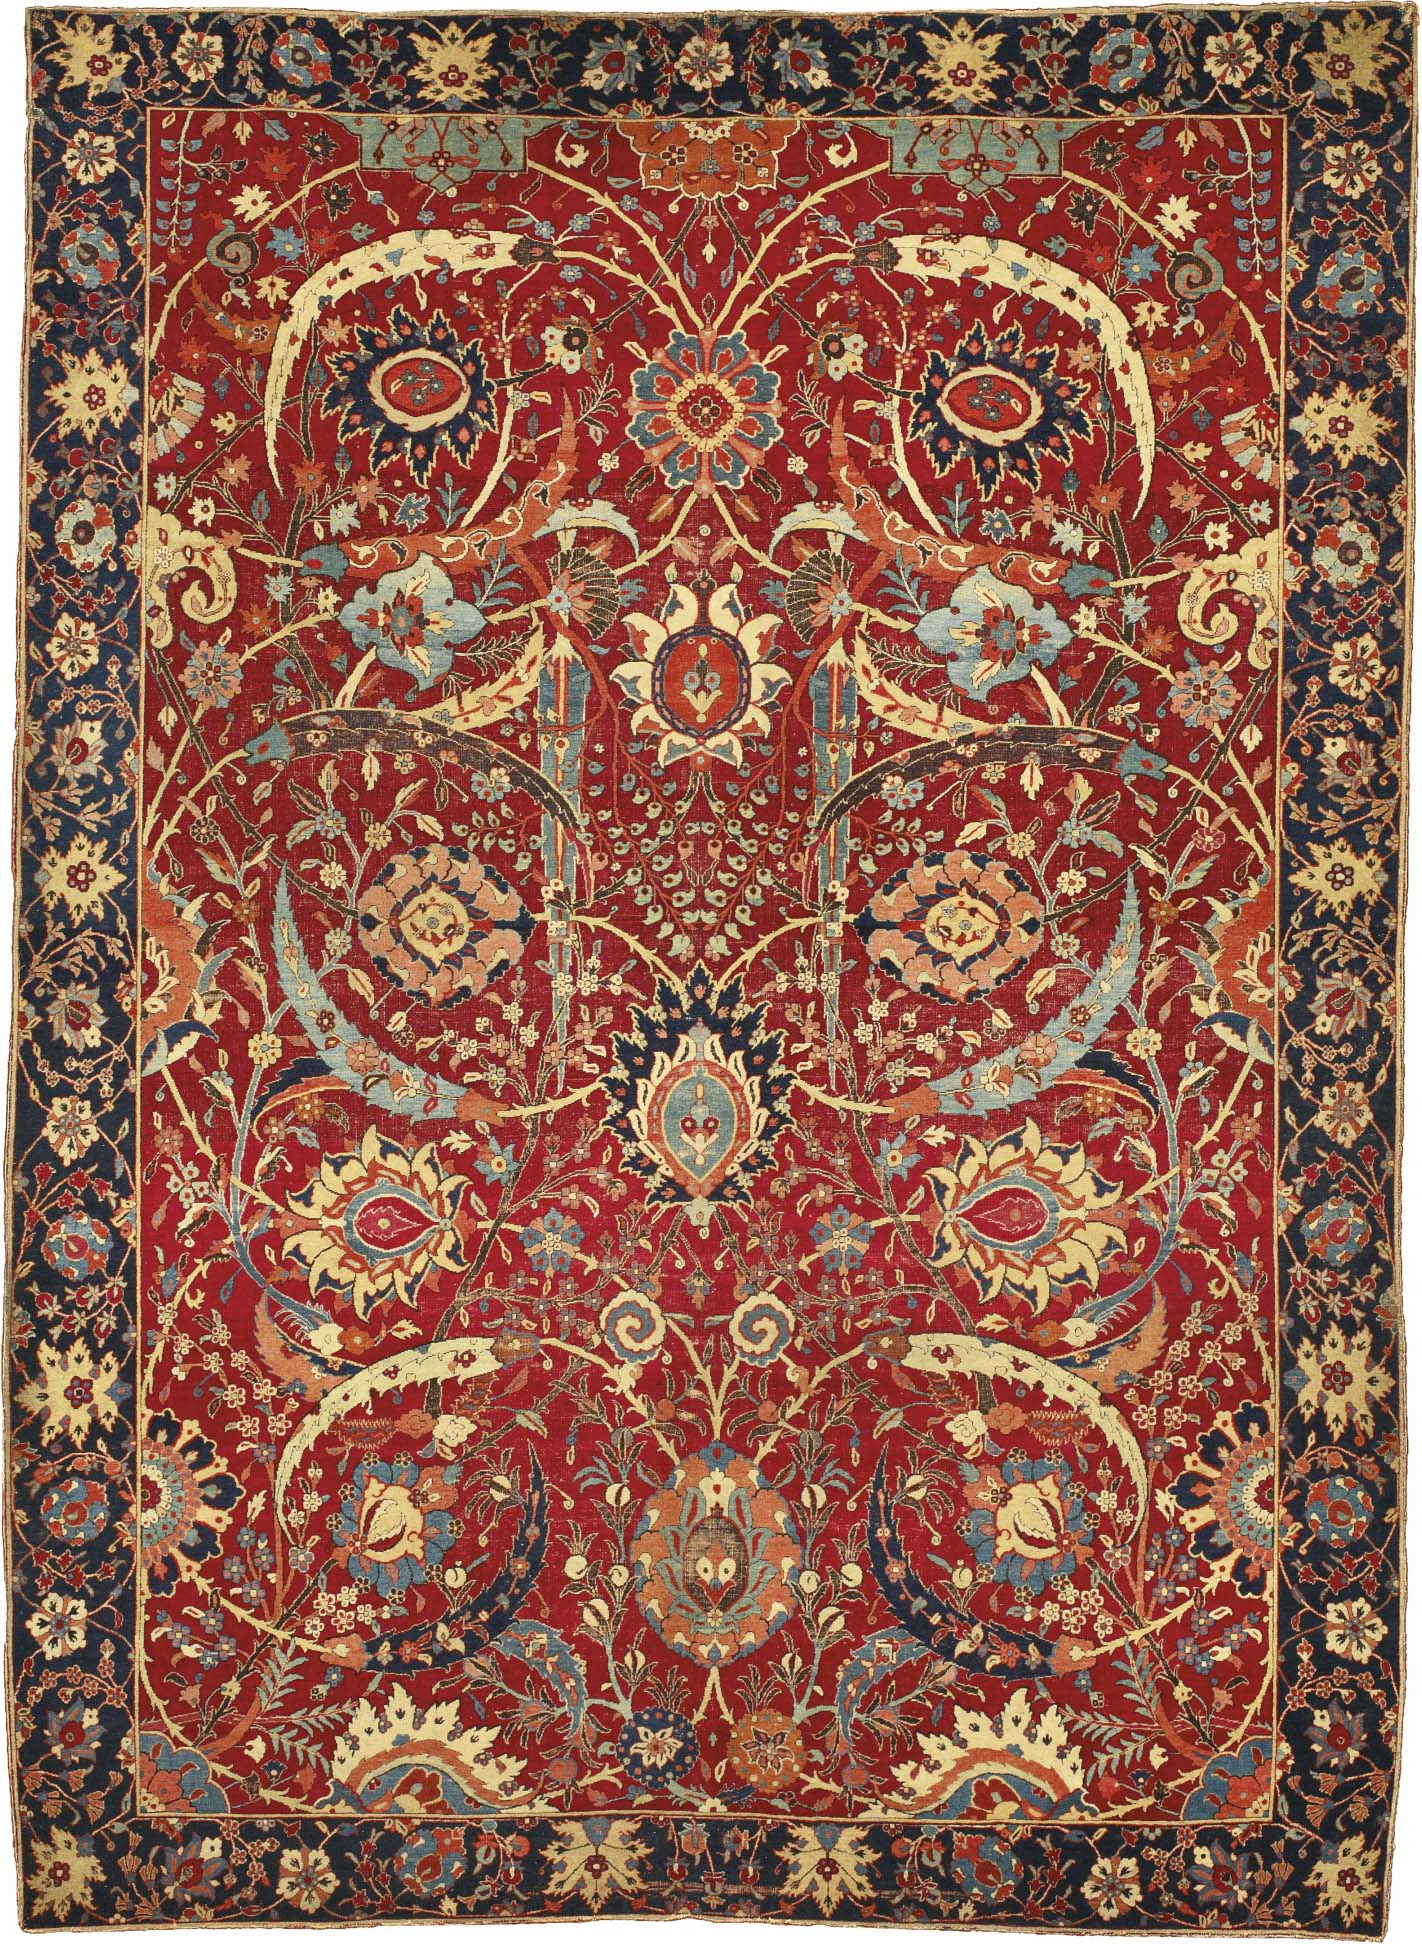 Auctioned by Sotheby's on 5 June 2013 as part of the 'Important Carpets from the William A. Clark Collection, Corcoran Gallery of Art' sale, the Clark Sickle-leaf Carpet far exceeded its estimate of $5,000,000 - $7,000,000 (USD) selling for $33,765,000 (USD) thus becoming the most valuable antique carpet in the world. Dating from the first half of the 17th century and noted as being of the 'vine scroll and palmette 'vase'-technique' the carpet probably originates from Kerman situated in the southeast of what is today modern-day Iran. It is also - for the layman - quintessentially Persian or Oriental in its aesthetic. | Image courtesy of Sotheby's.